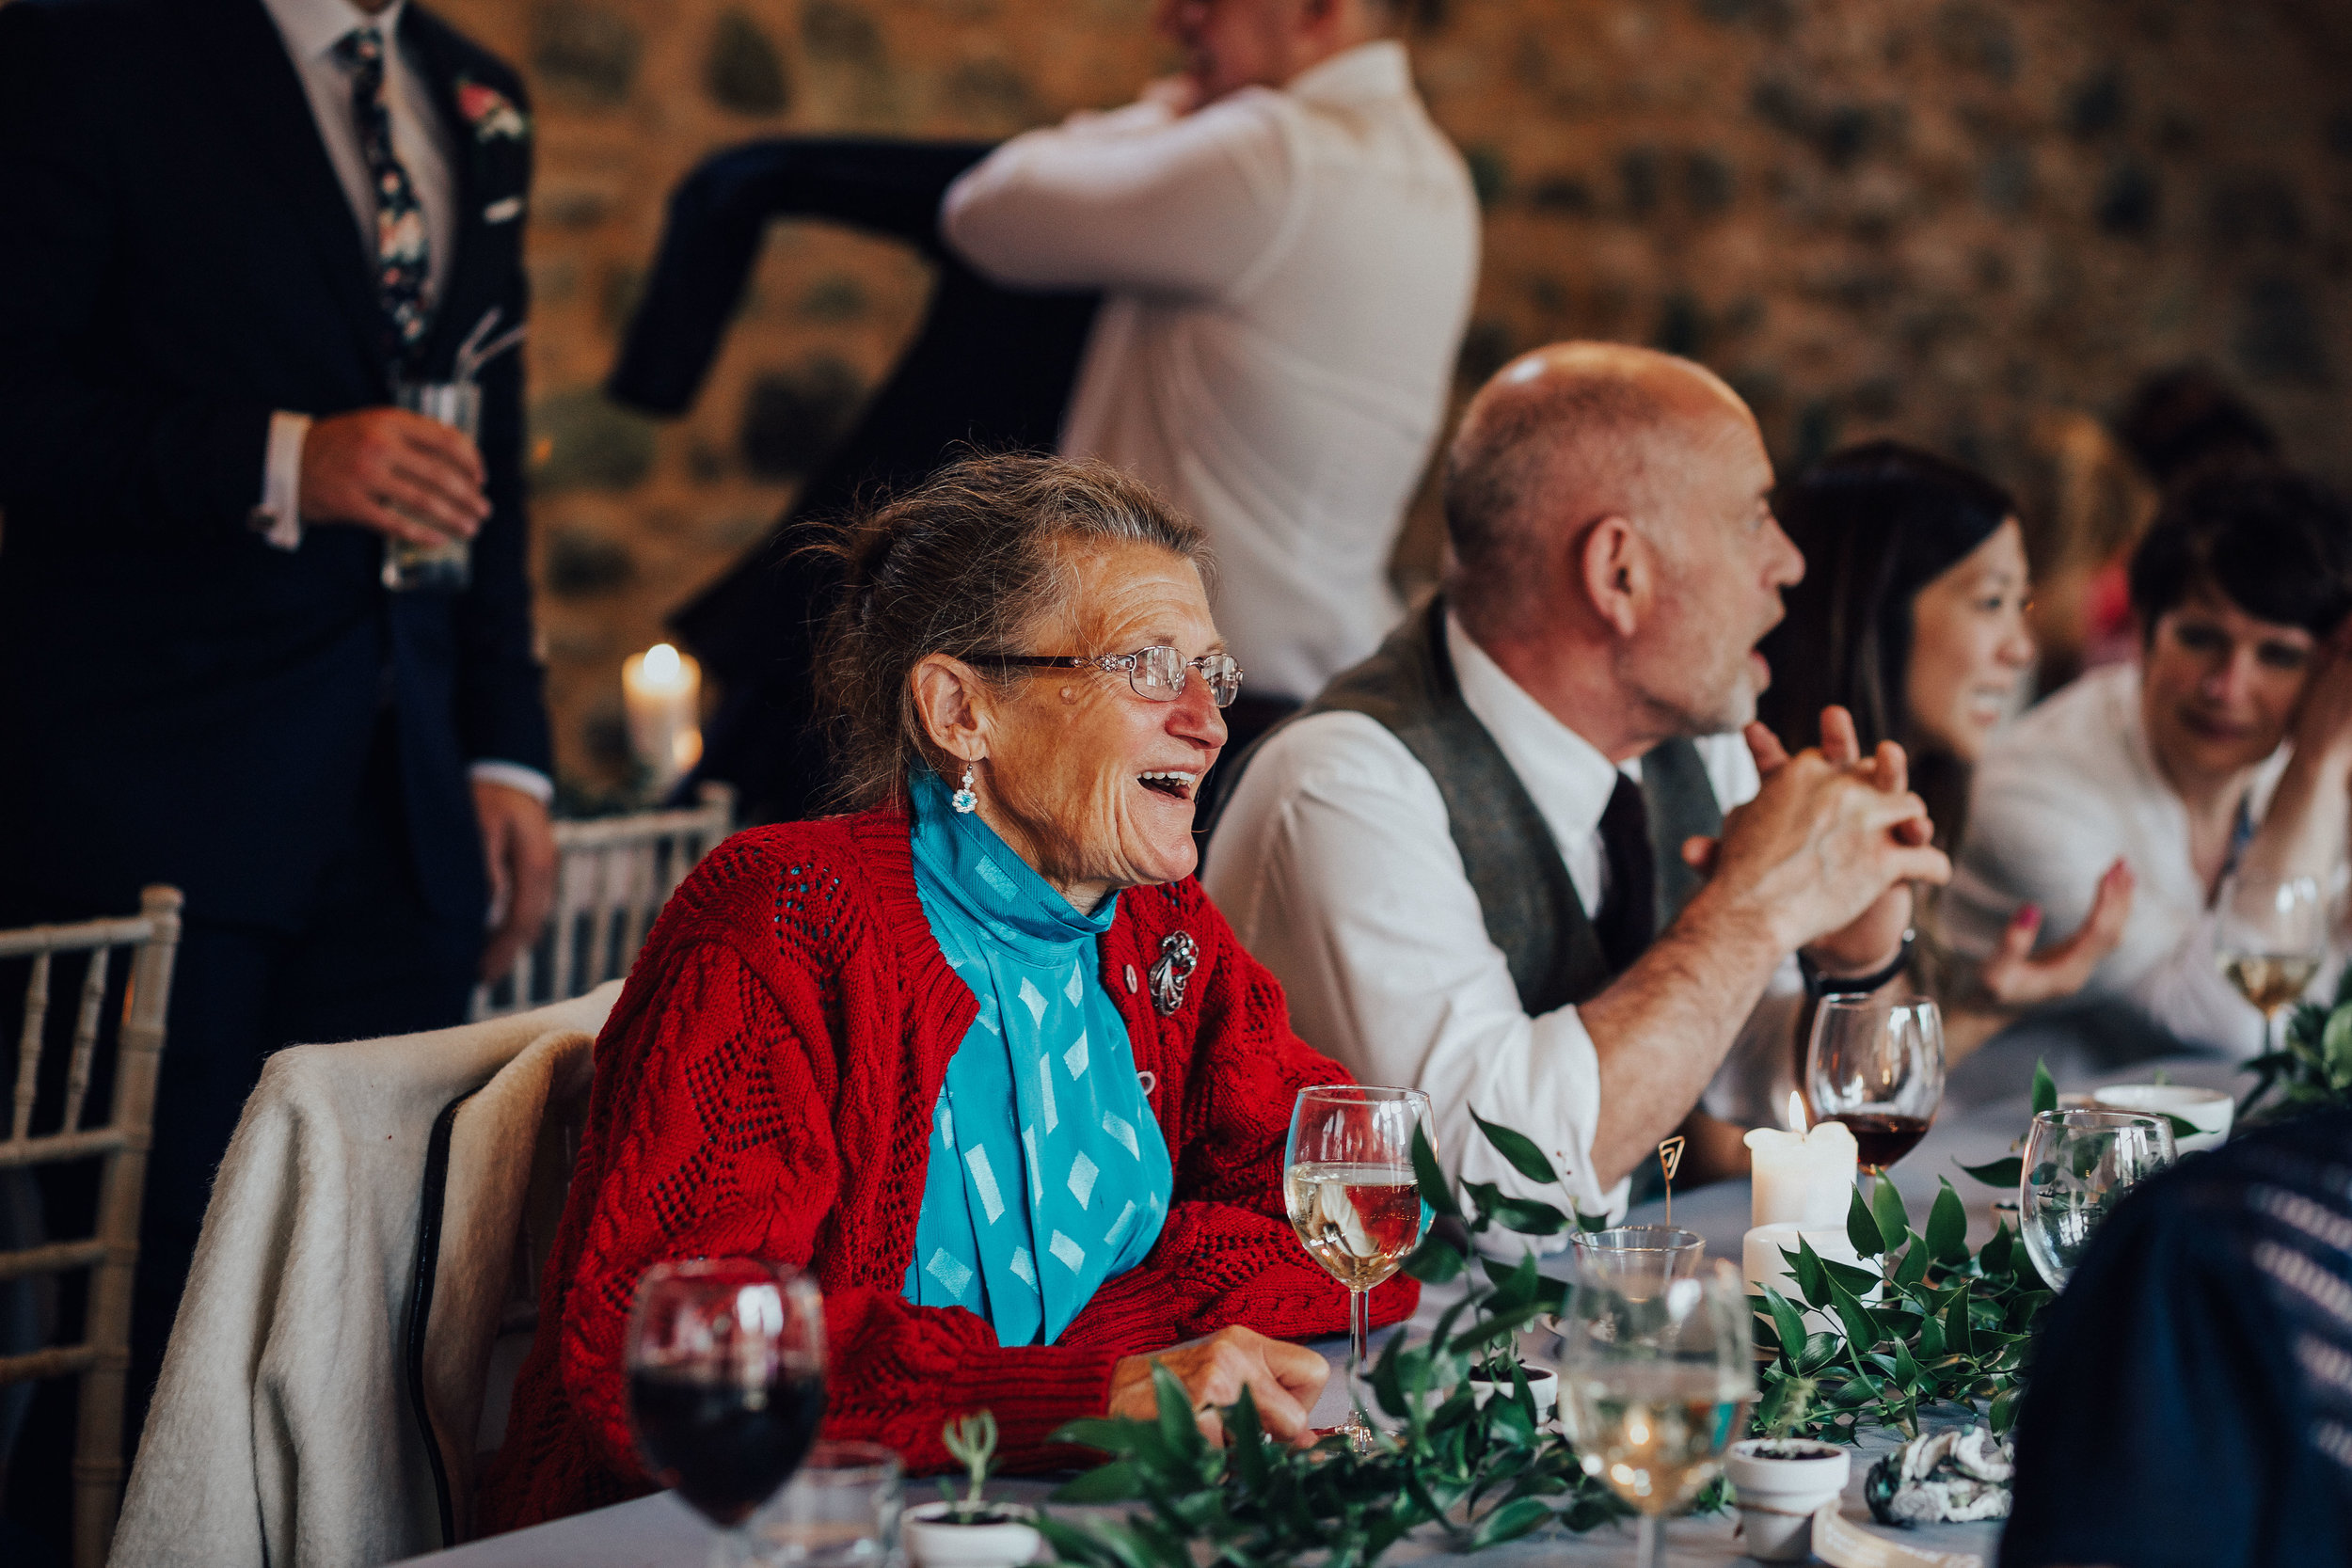 PJ_PHILLIPS_PHOTOGRAPHY_EDINBURGH_WEDDERBURN_BARNS_WEDDING_EDINBURGH_WEDDING_PHOTOGRAPHER_127.jpg